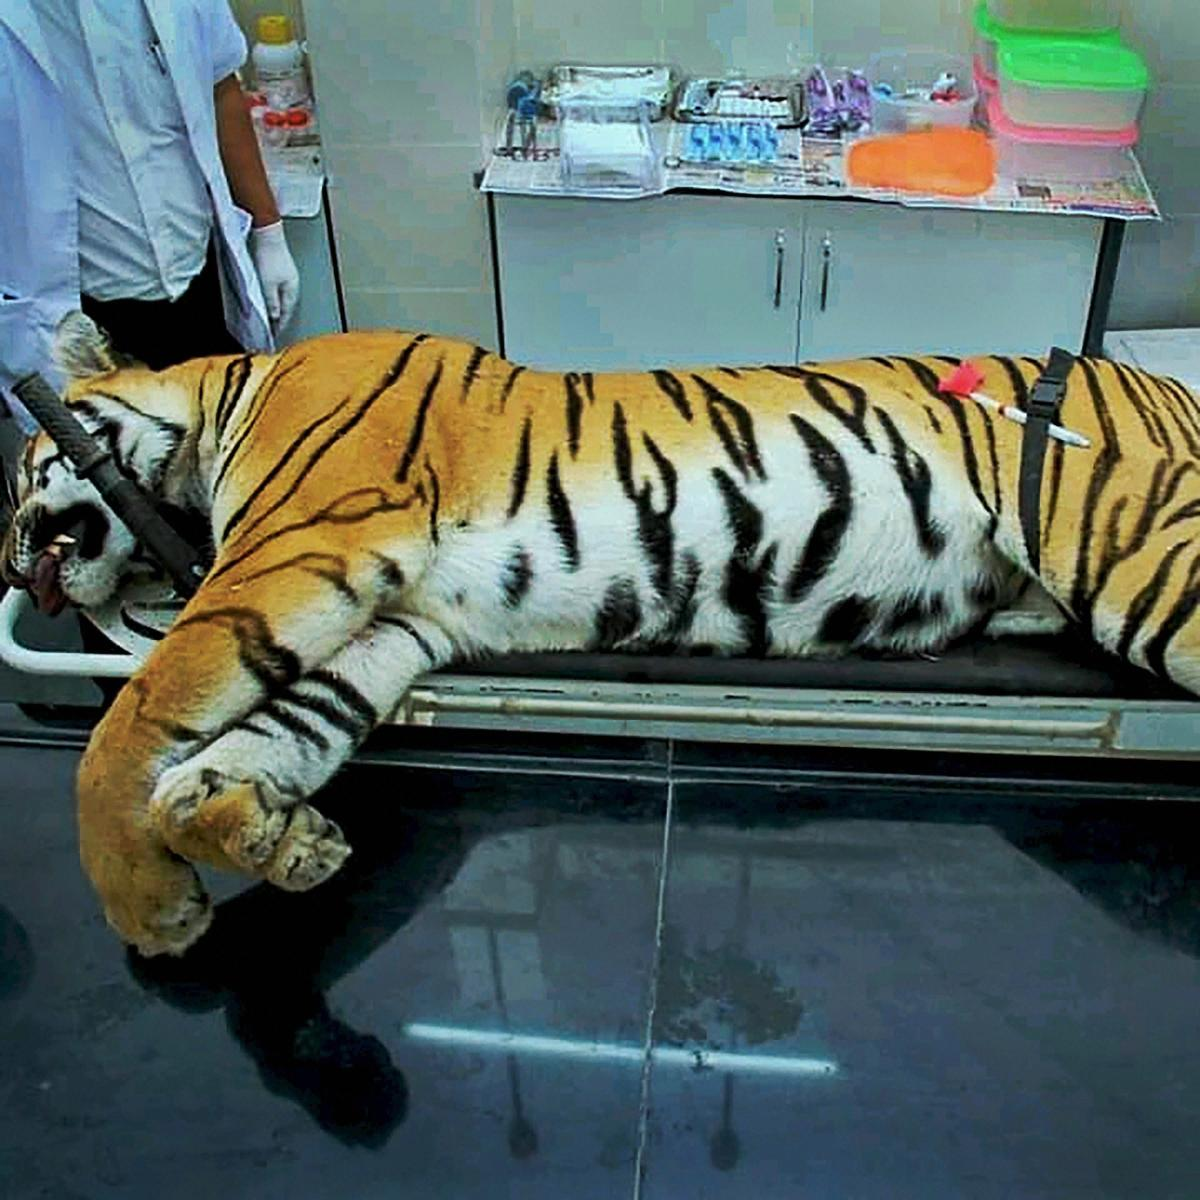 Post-mortem of the mortal remains of T1, aka Avni, a five-year-old tigress who was shot dead in the forests of Pandharkawda, being performed at the Gorewada Rescue Centre in Nagpur, on Nov 3, 2018. PTI